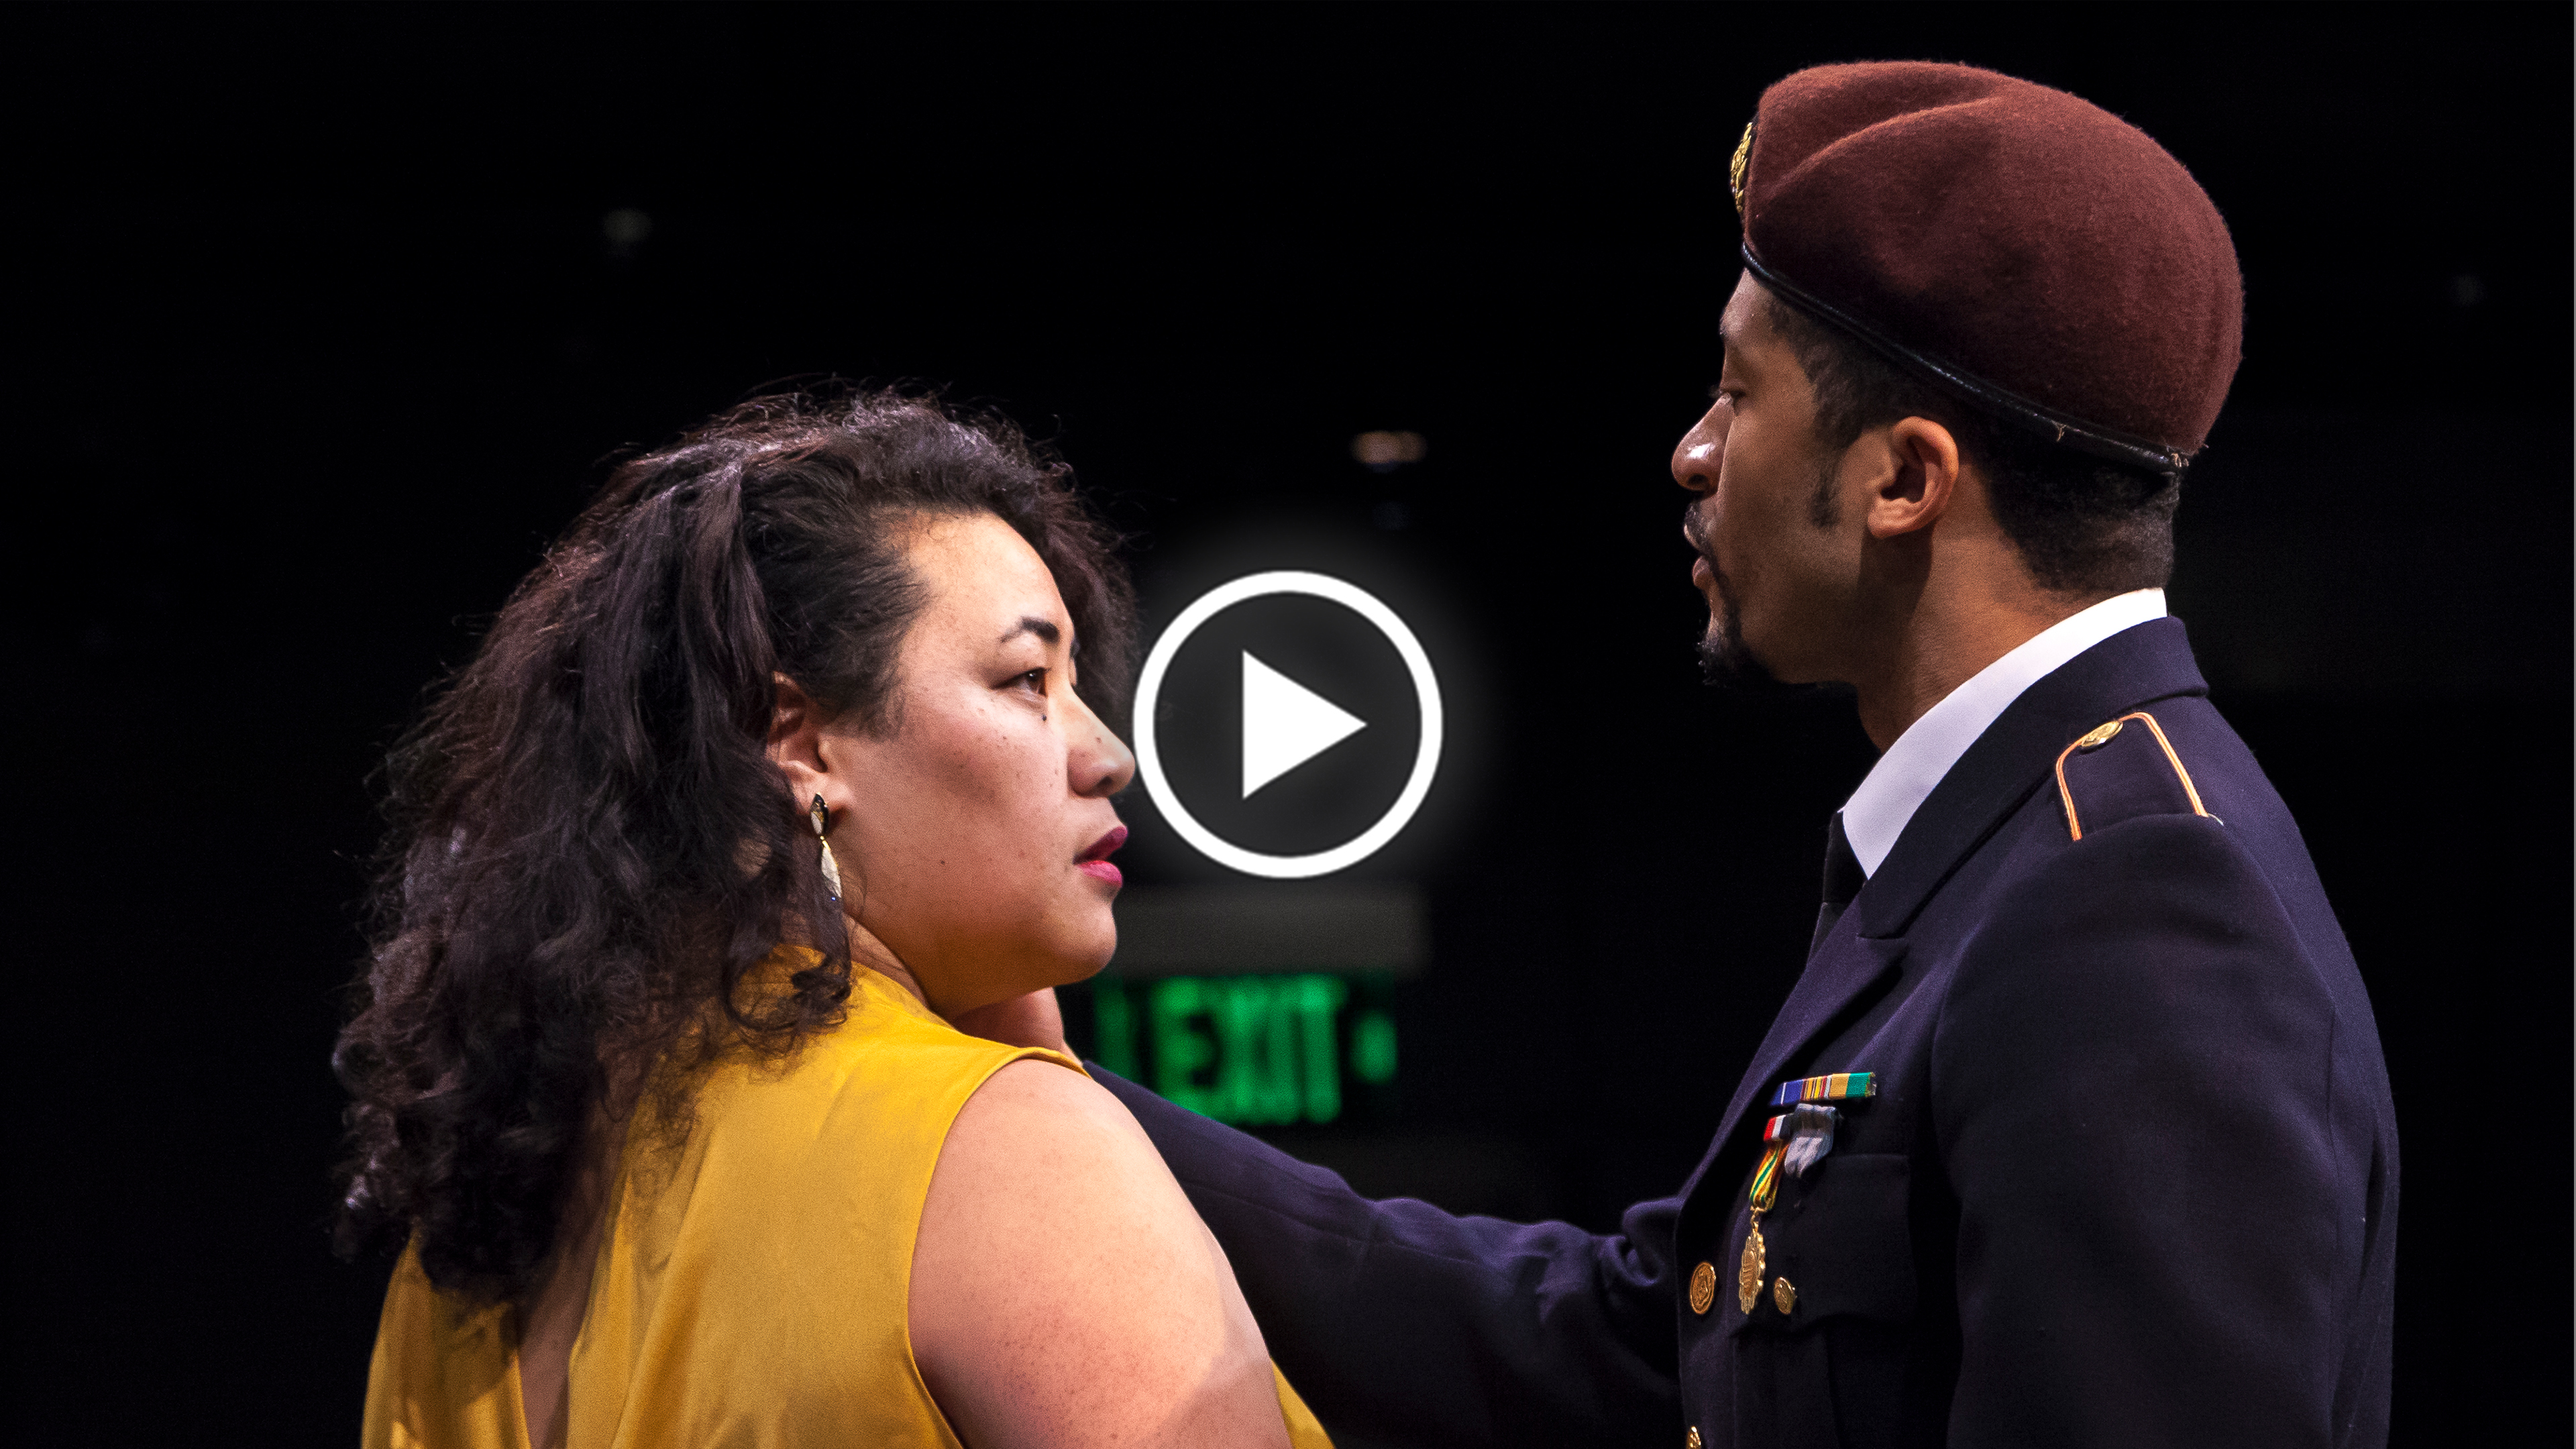 """DIRECTING B Jecamiah M. Ybañez ('19), Shadi Ghaheri ('18), and Em Weinstein ('19) Part 2 """"The people in the room with you are diverse people from all over the world."""""""